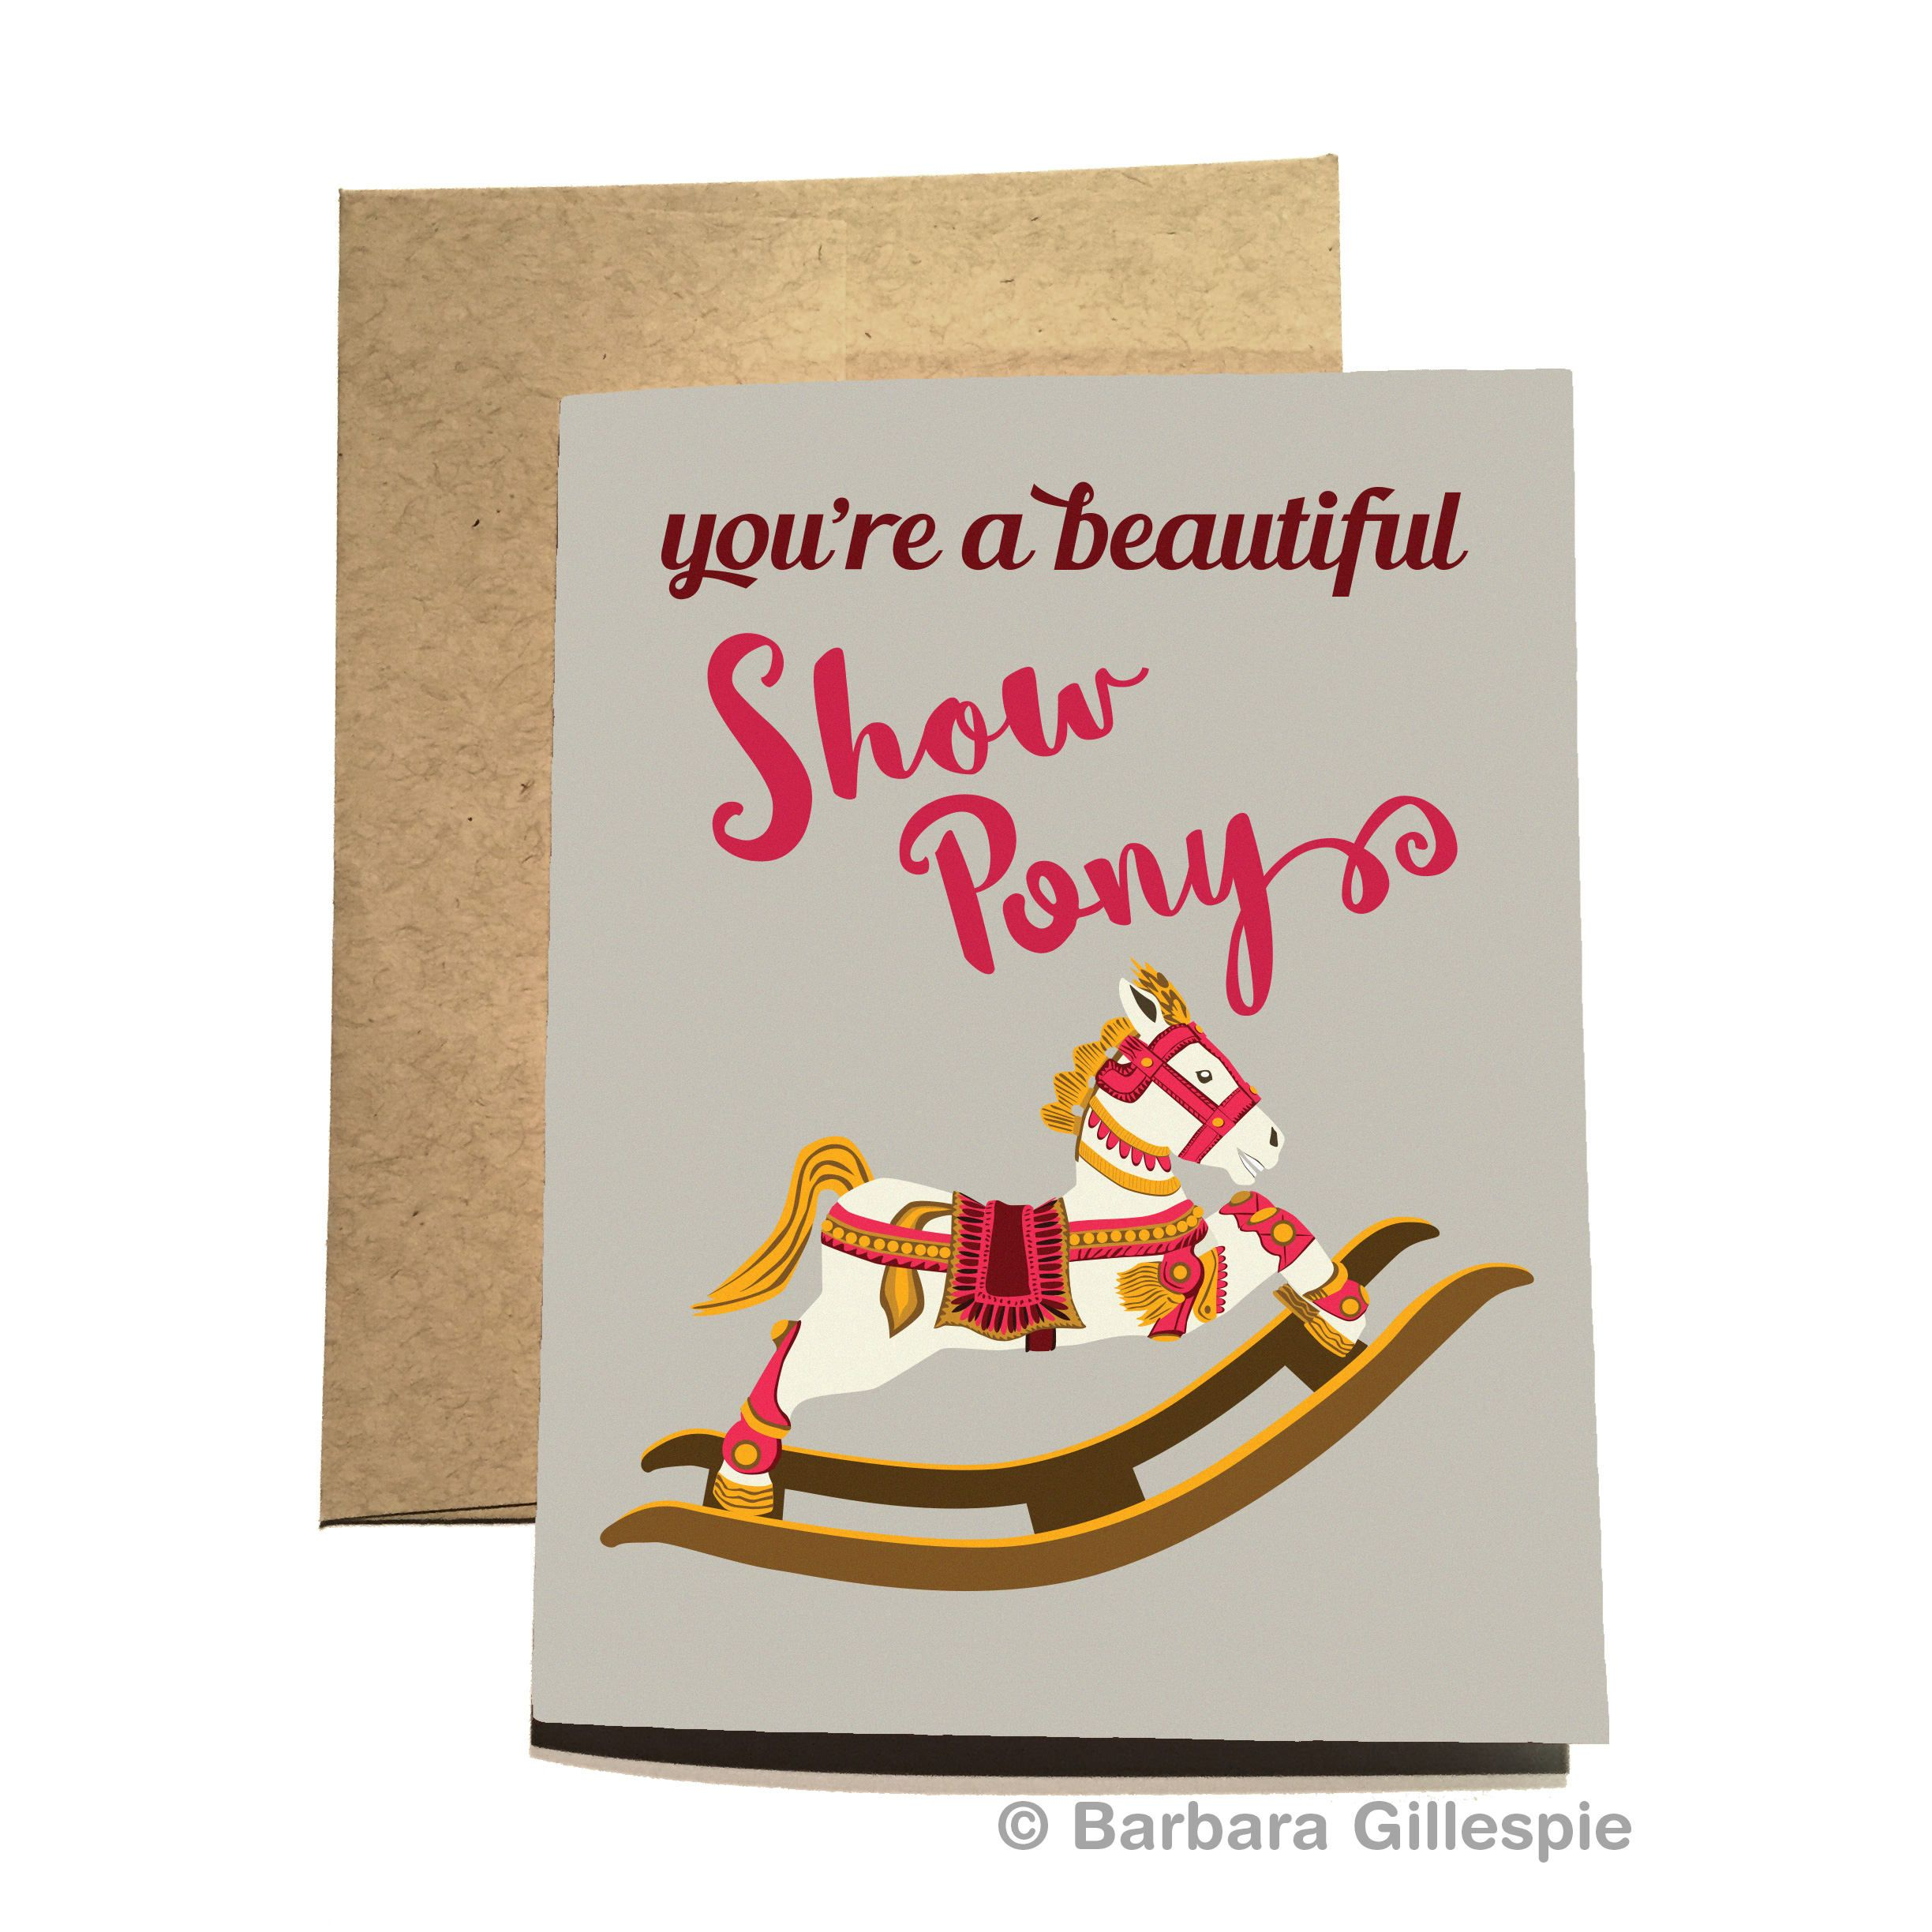 Show Pony Support Card / You're a Beautiful Show Pony